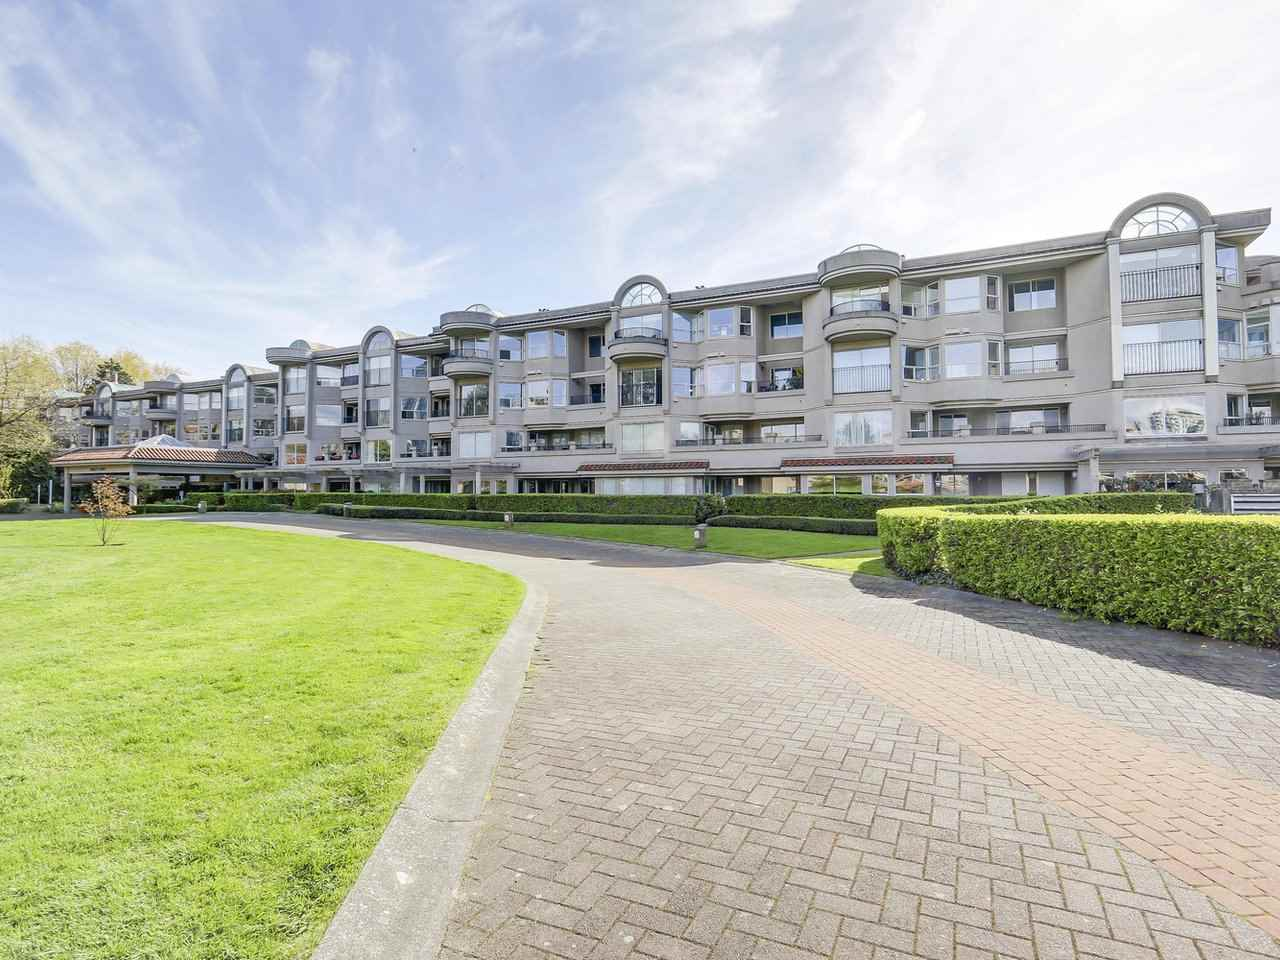 Condo Apartment at 221 525 WHEELHOUSE SQUARE, Unit 221, Vancouver West, British Columbia. Image 1